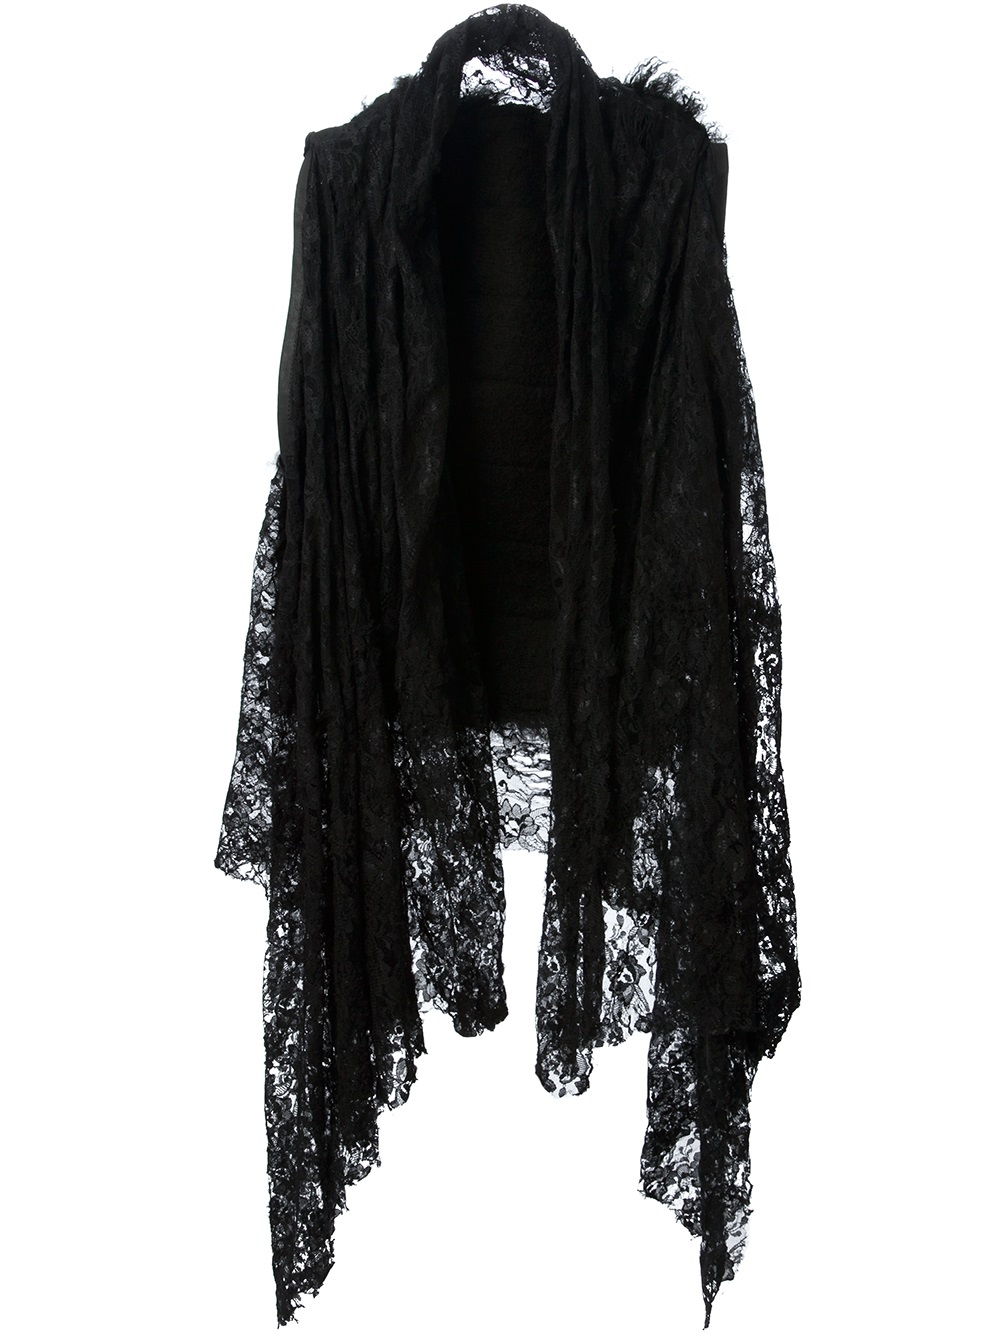 Womens Black Lace Cardigan